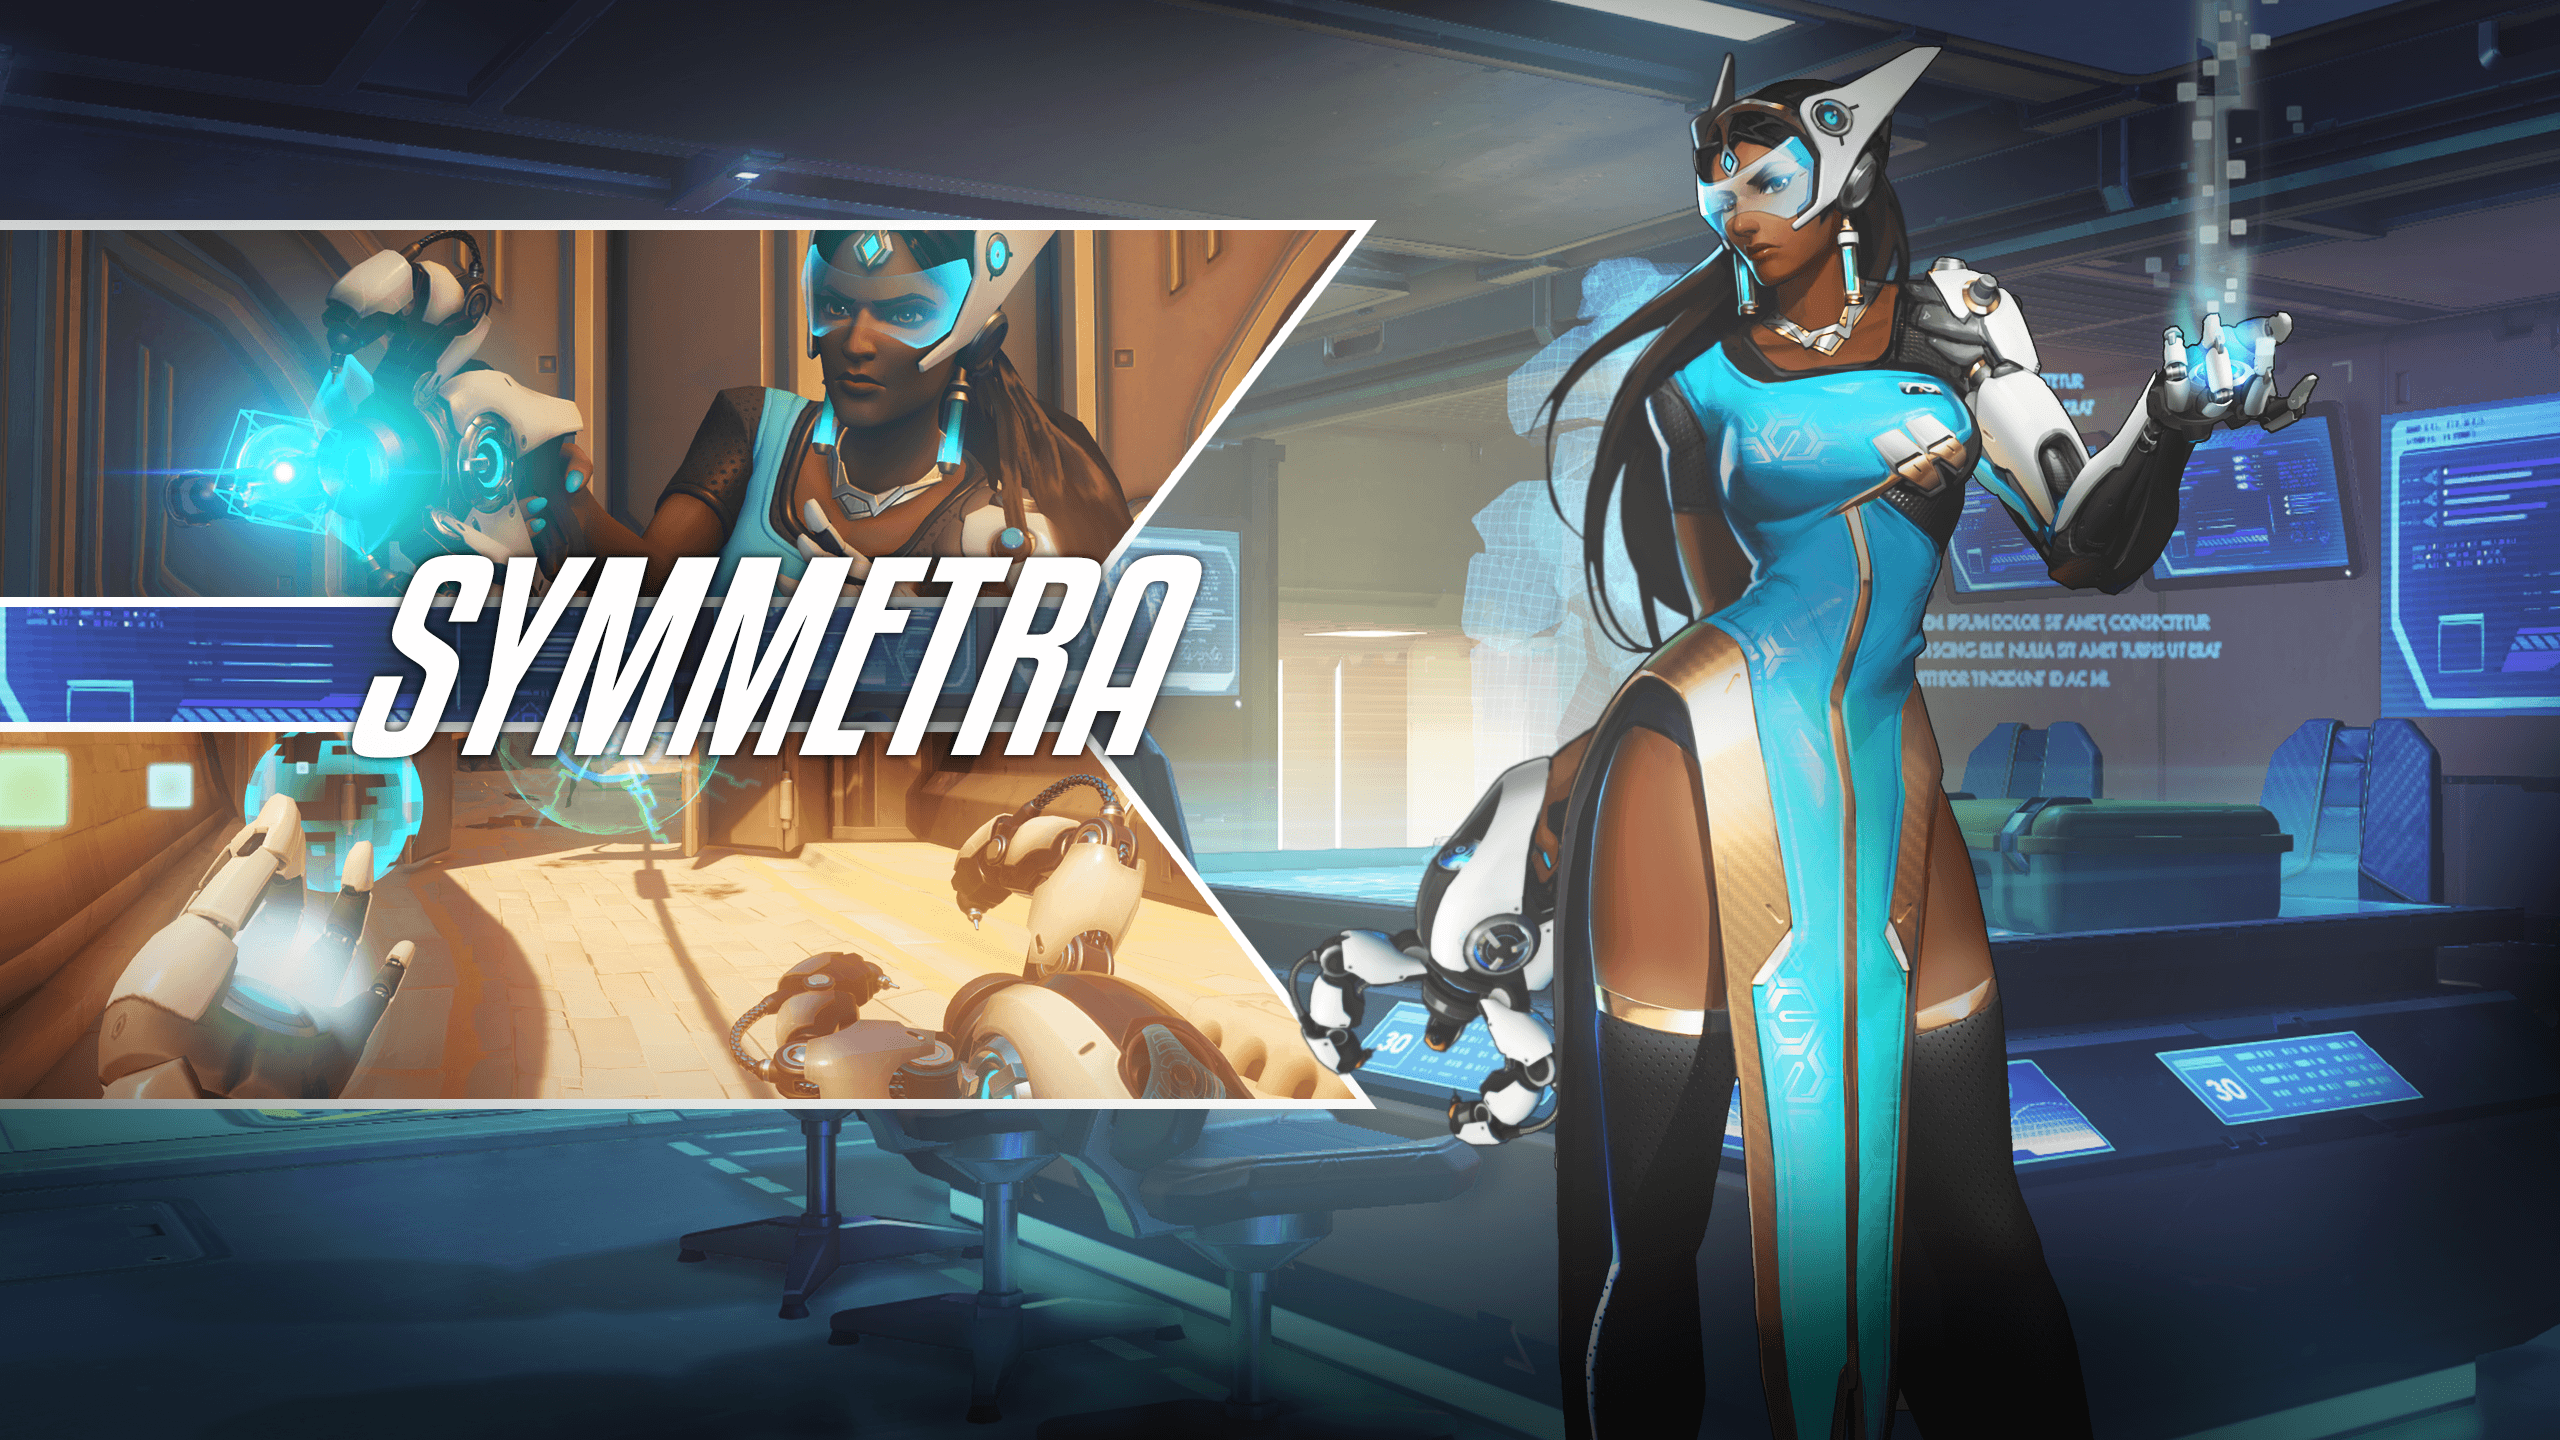 58 Symmetra (Overwatch) HD Wallpapers | Background Images ...